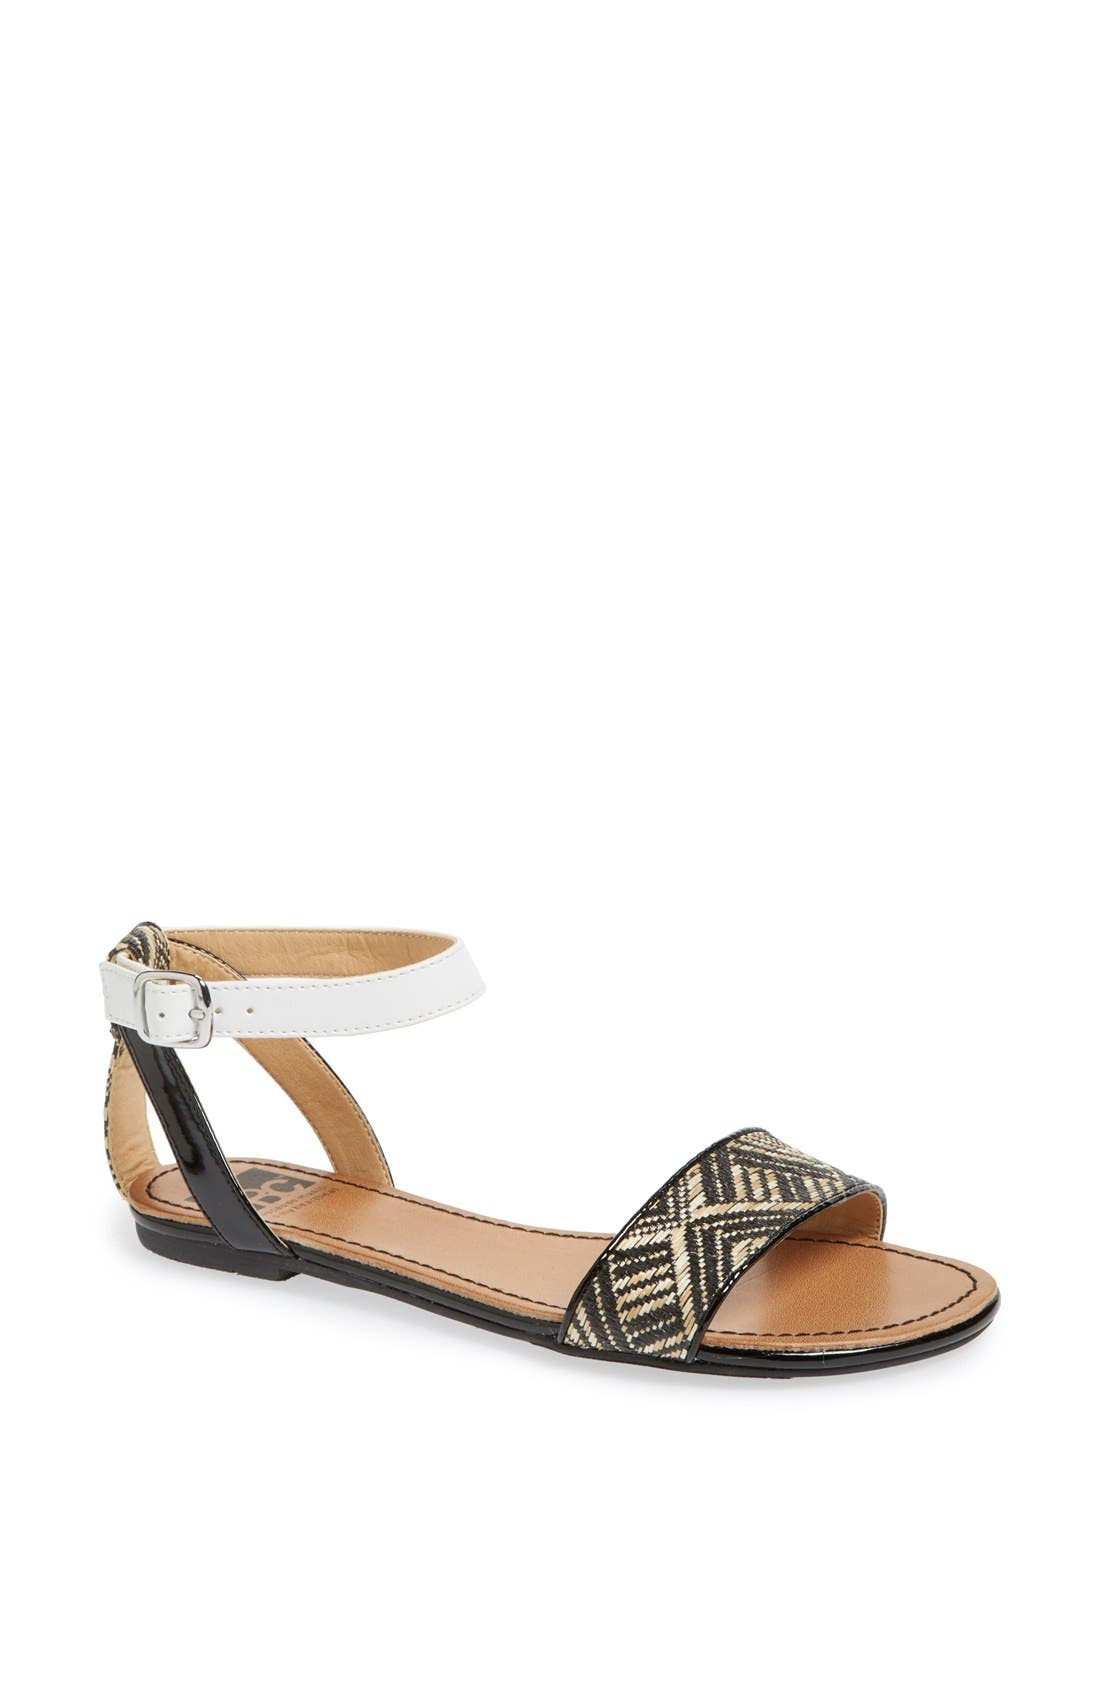 Alternate Image 1 Selected - BC Footwear 'Natural Instincts' Sandal